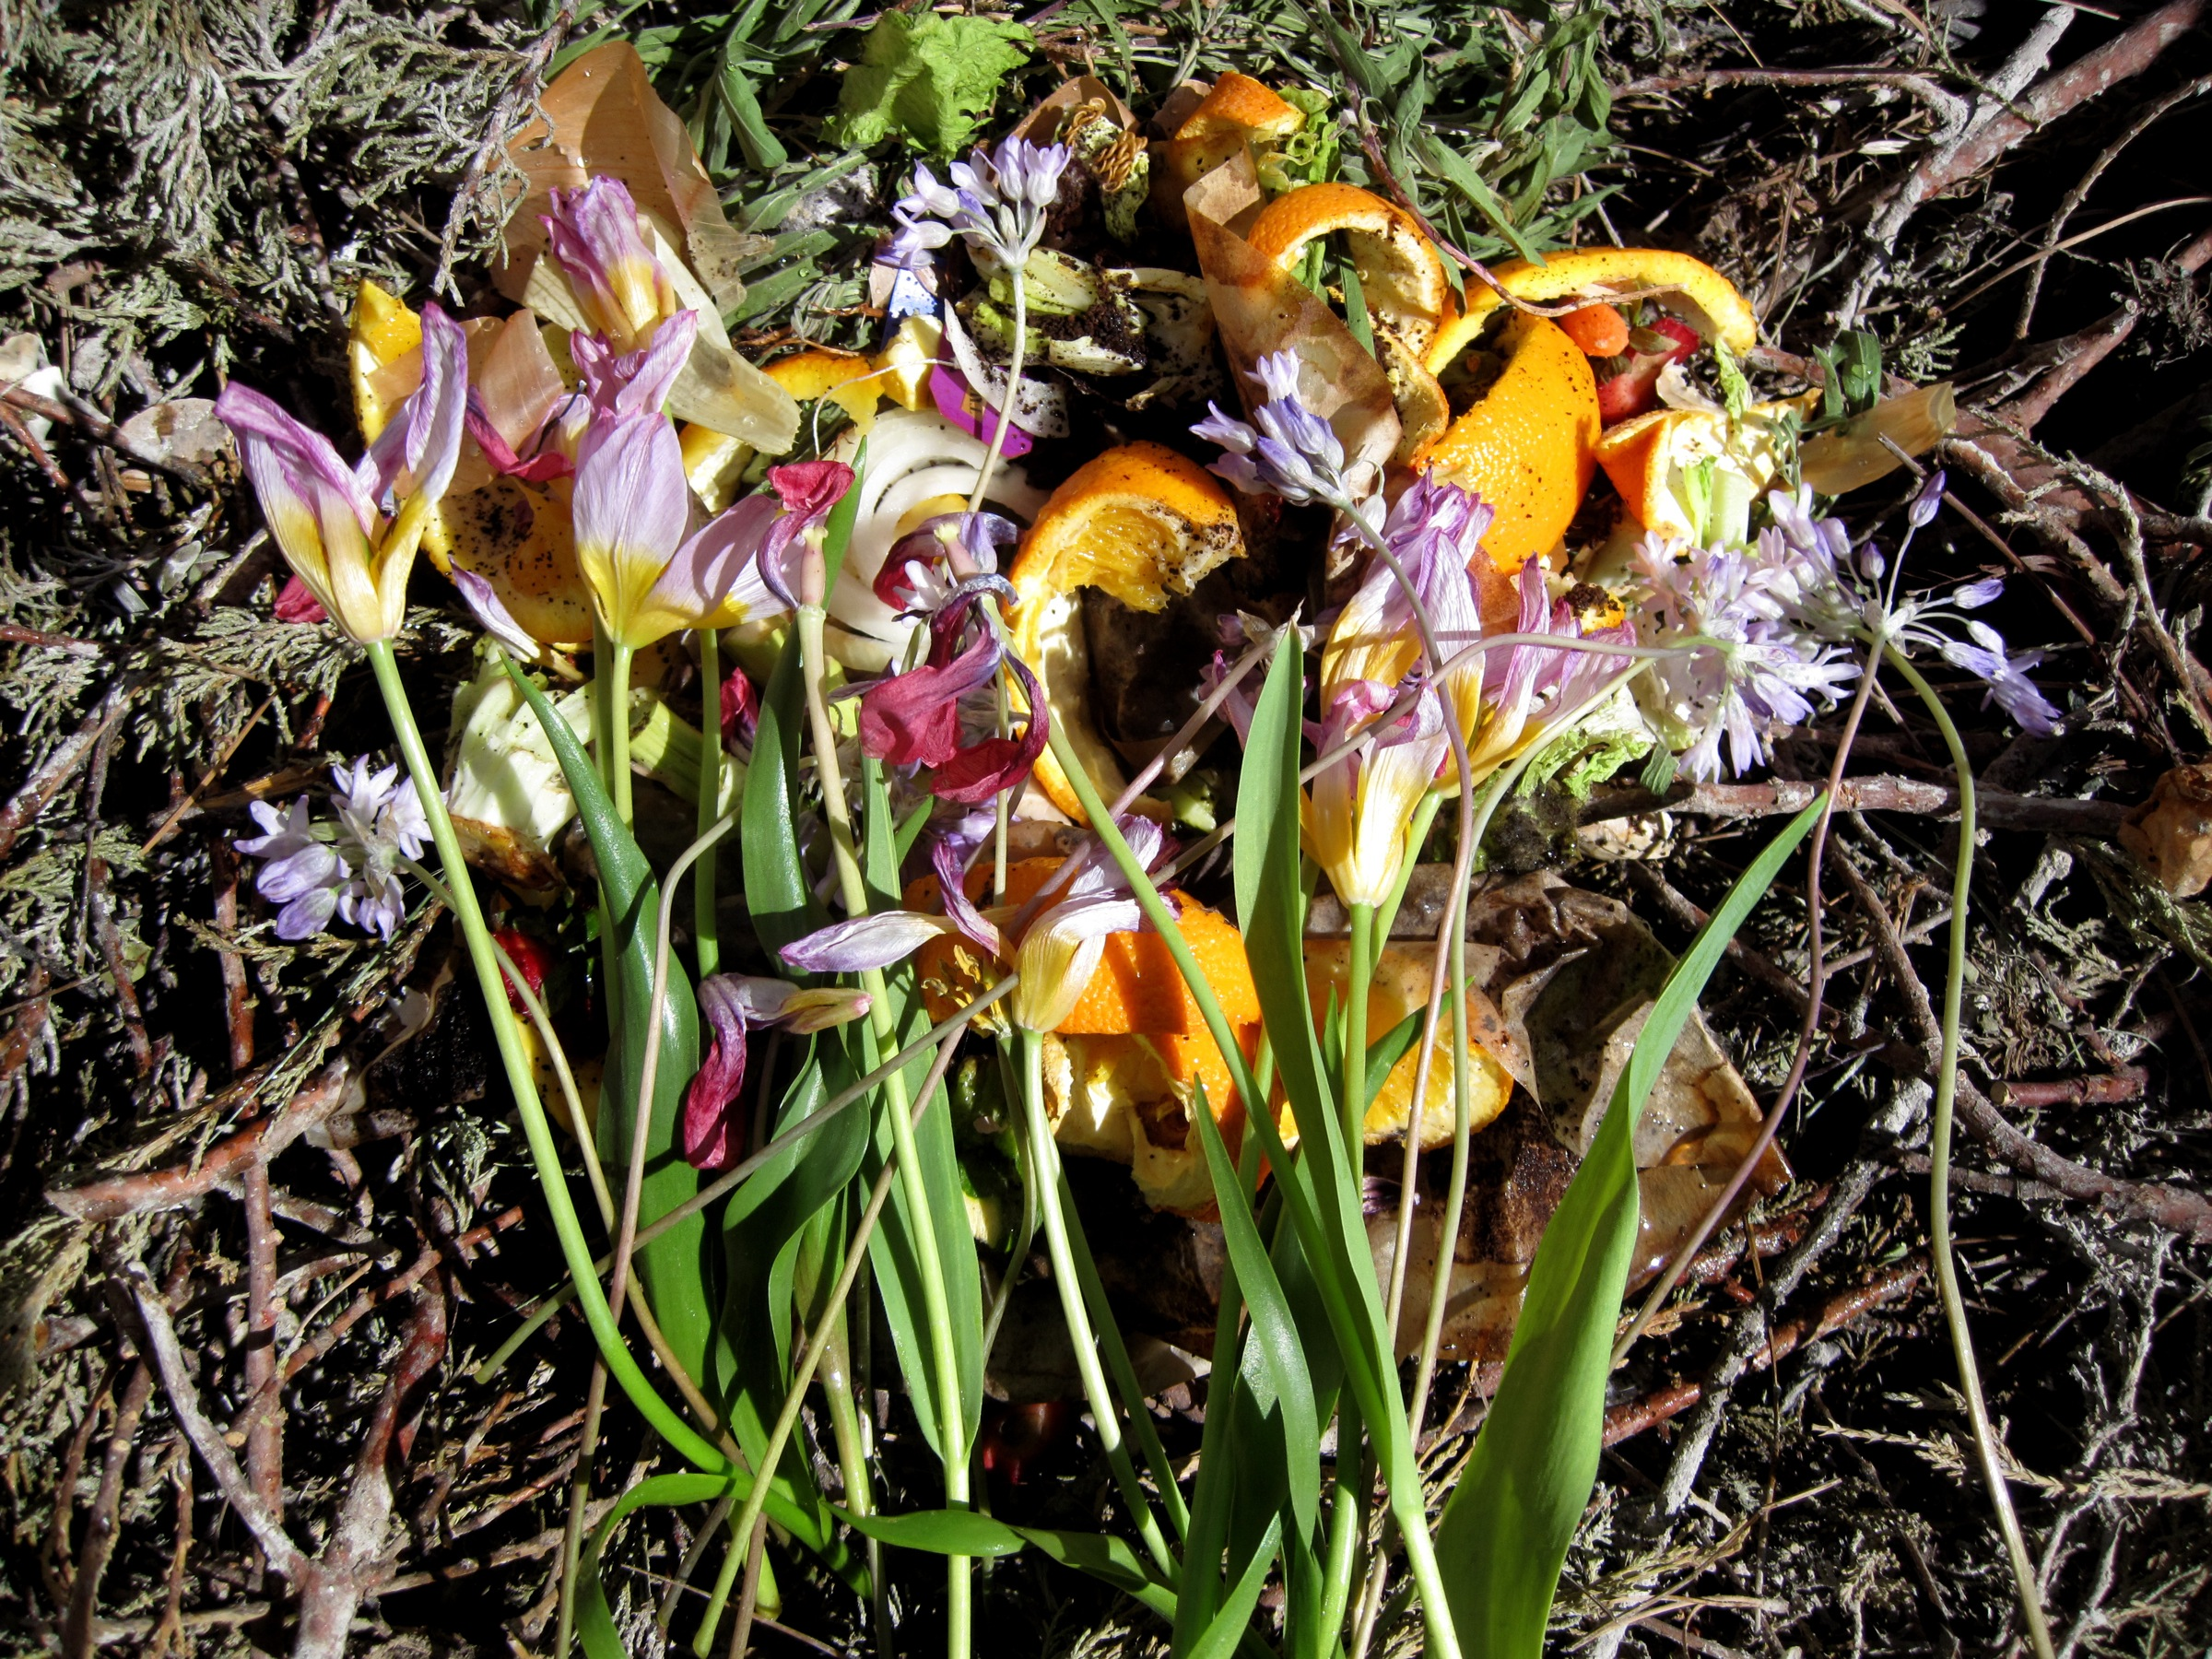 Compost, featuring orange peels and pink flowers